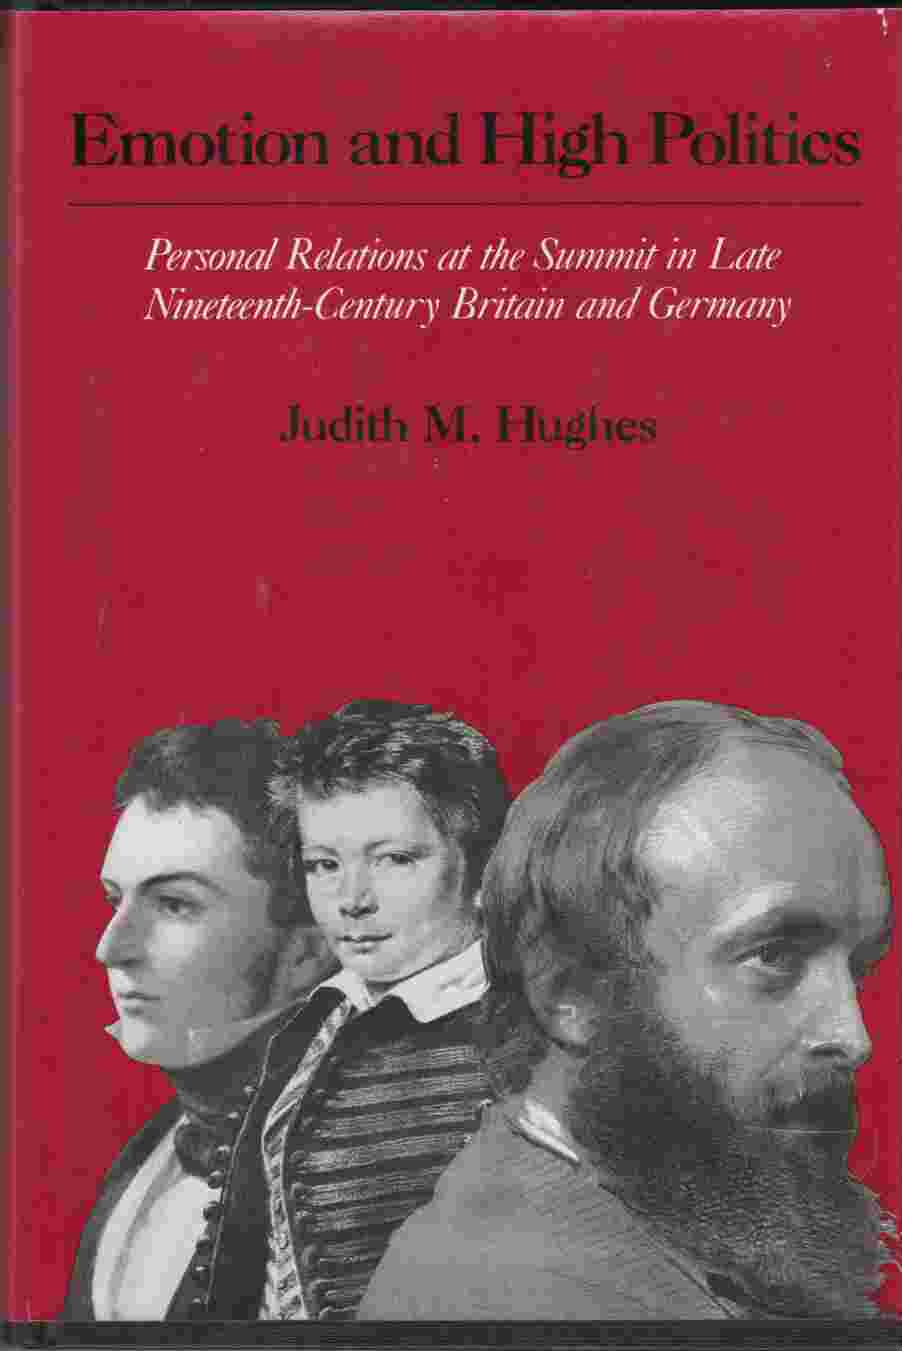 Image for Emotion and High Politics Personal Relations At the Summit in Late Nineteenth-Century Britain and Germany